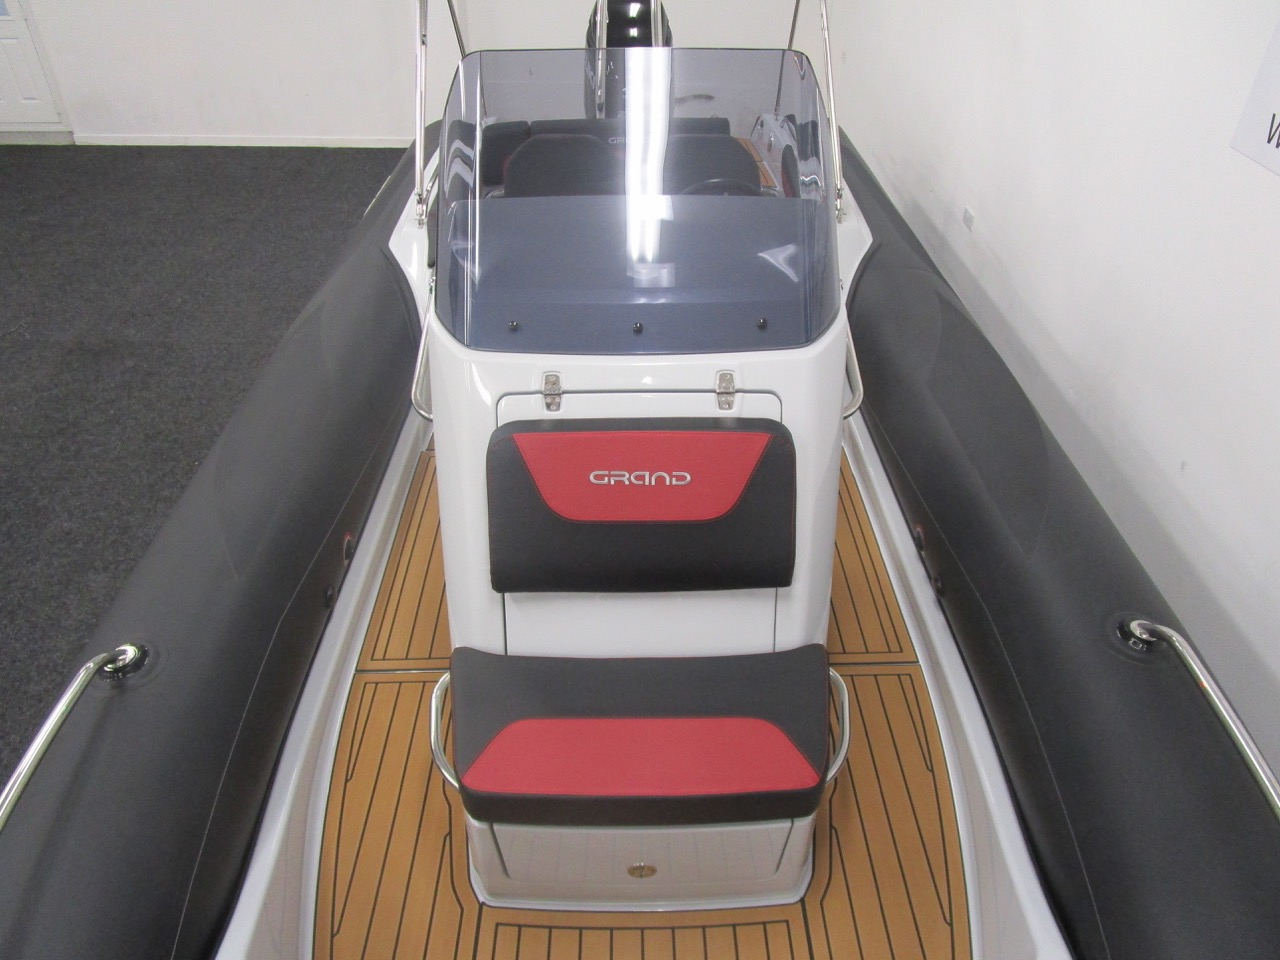 GRAND G750 RIB console front view